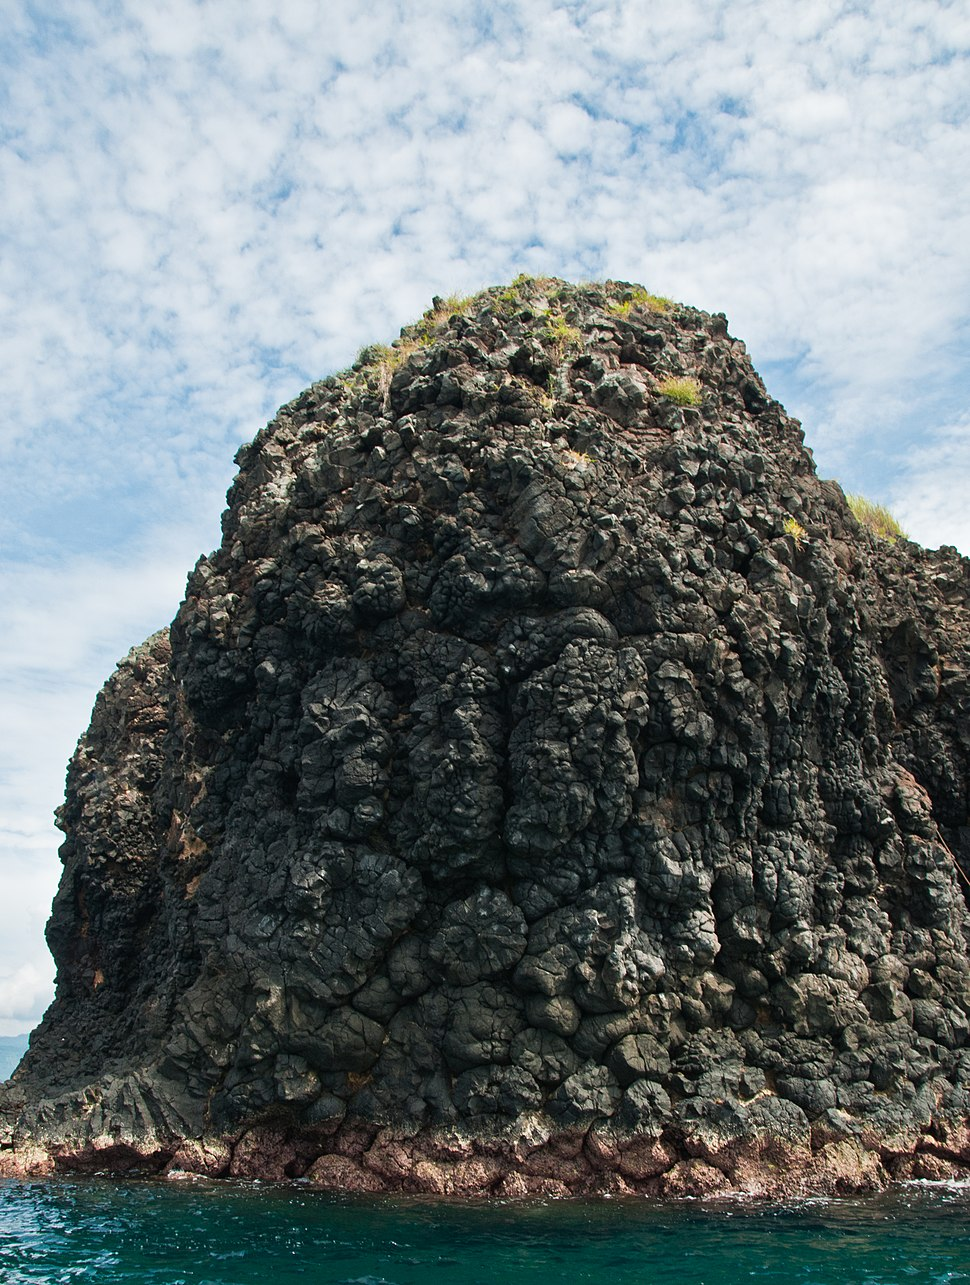 A small island made of pillow lava near Bali in Indonesia